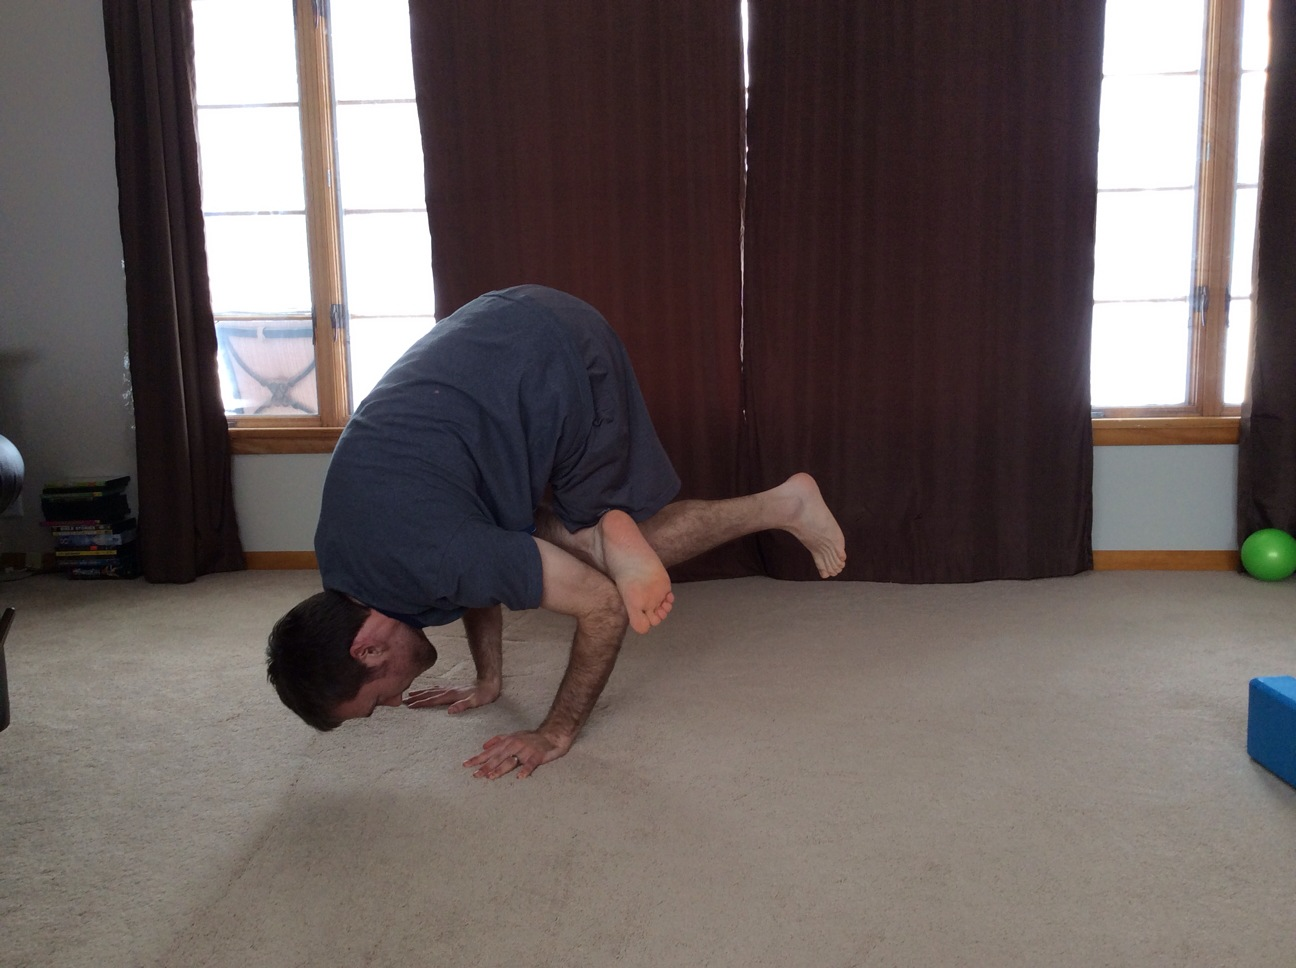 Some Sample Yoga Poses From P90x3